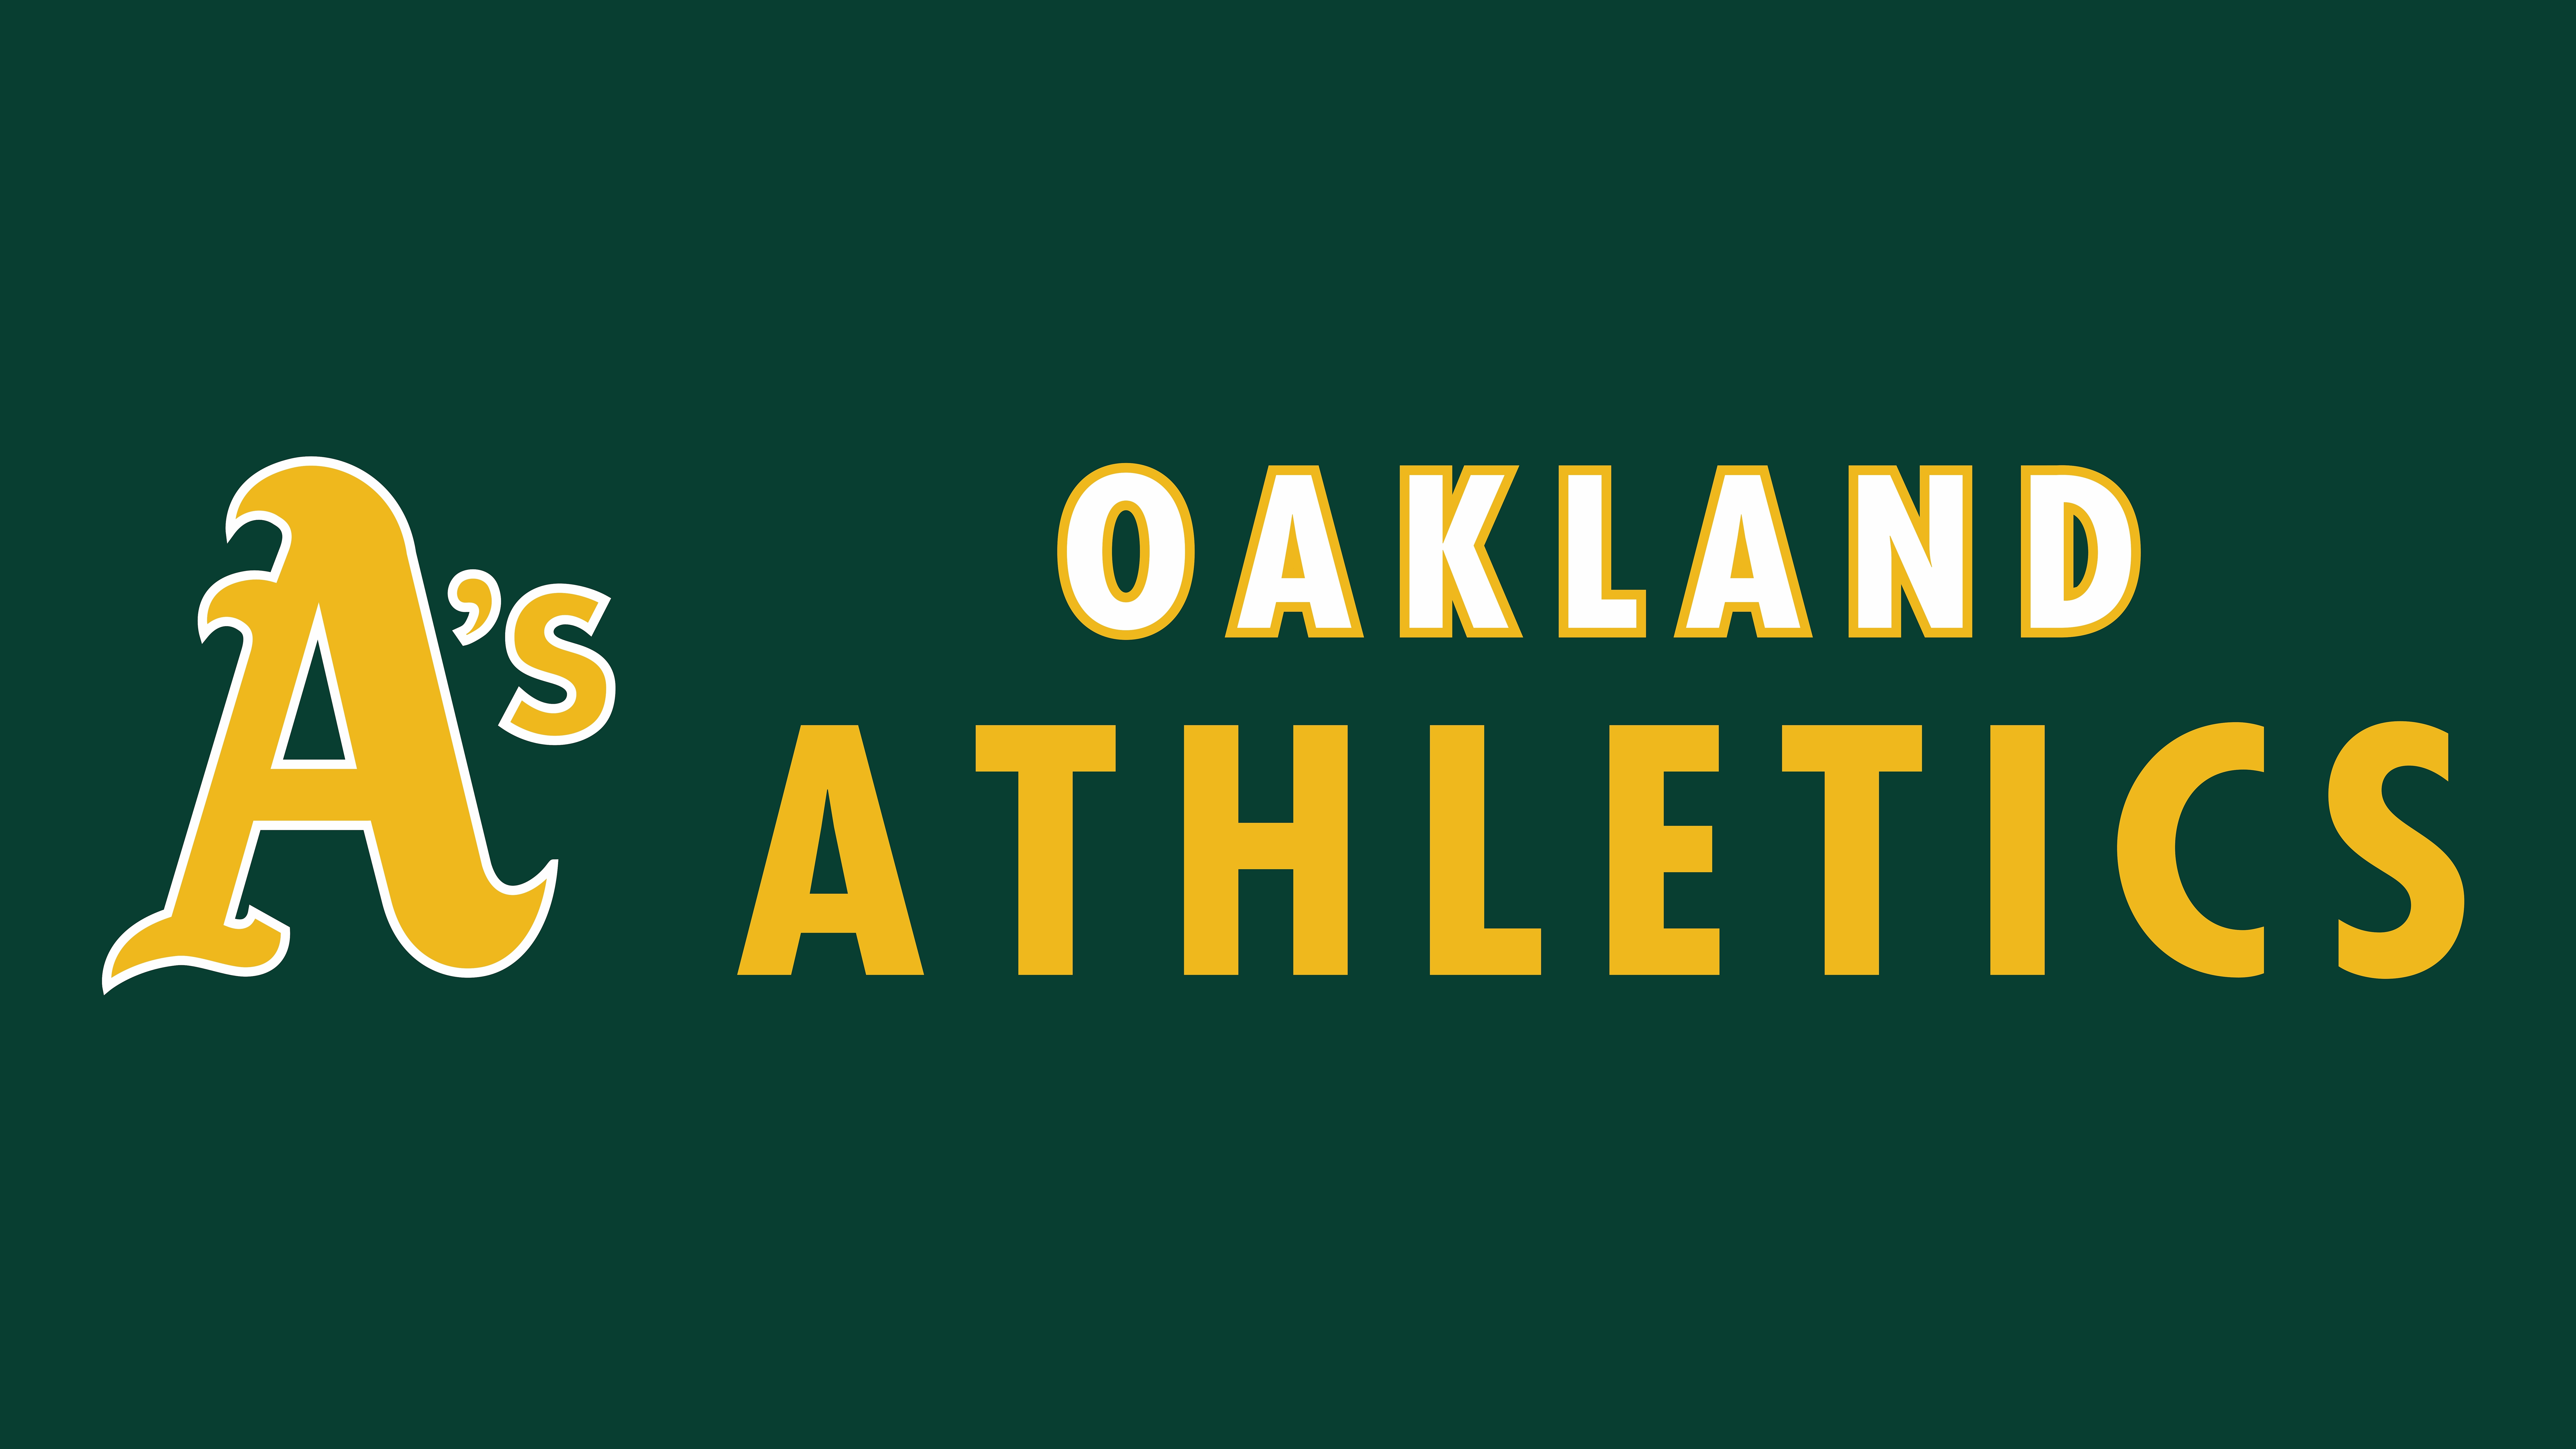 12000x6750 - Oakland Athletics Wallpapers 4